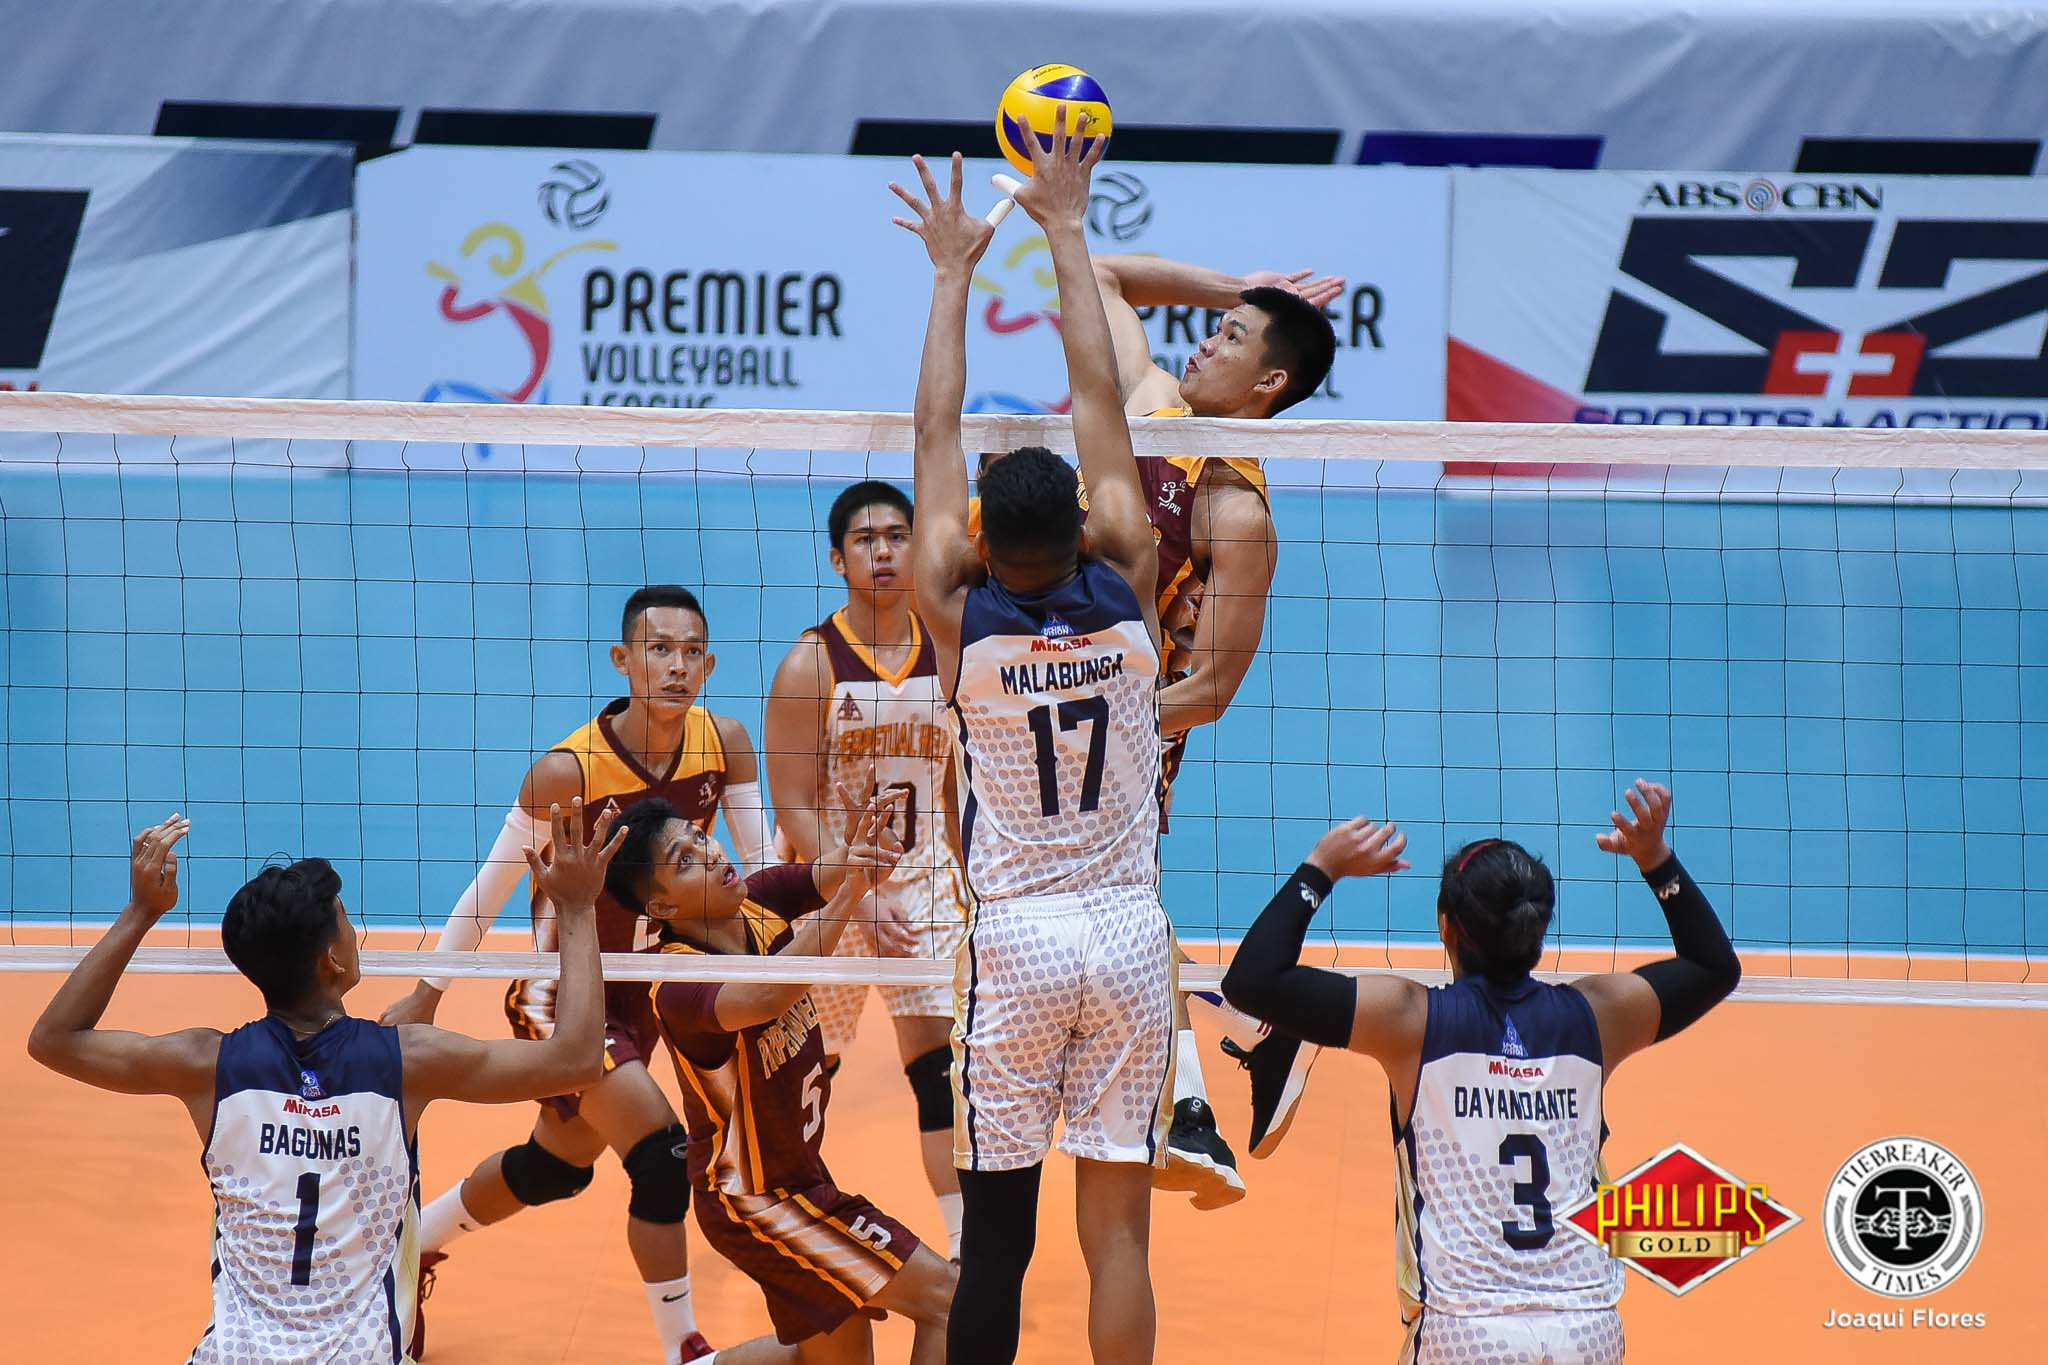 Tiebreaker Times Perpetual pounds La Salle for second straight win DLSU News PVL UPHSD Volleyball  Ryann Go Perpetual Men's Volleyball Patrick Ramos Norman Miguel Kieffer Reyes Joebert Almodiel Joaquin Marcelo Geraint Bacon EJ Casana DLSU Men's Volleyball 2018 PVL Season 2018 PVL Men's Collegiate Conference